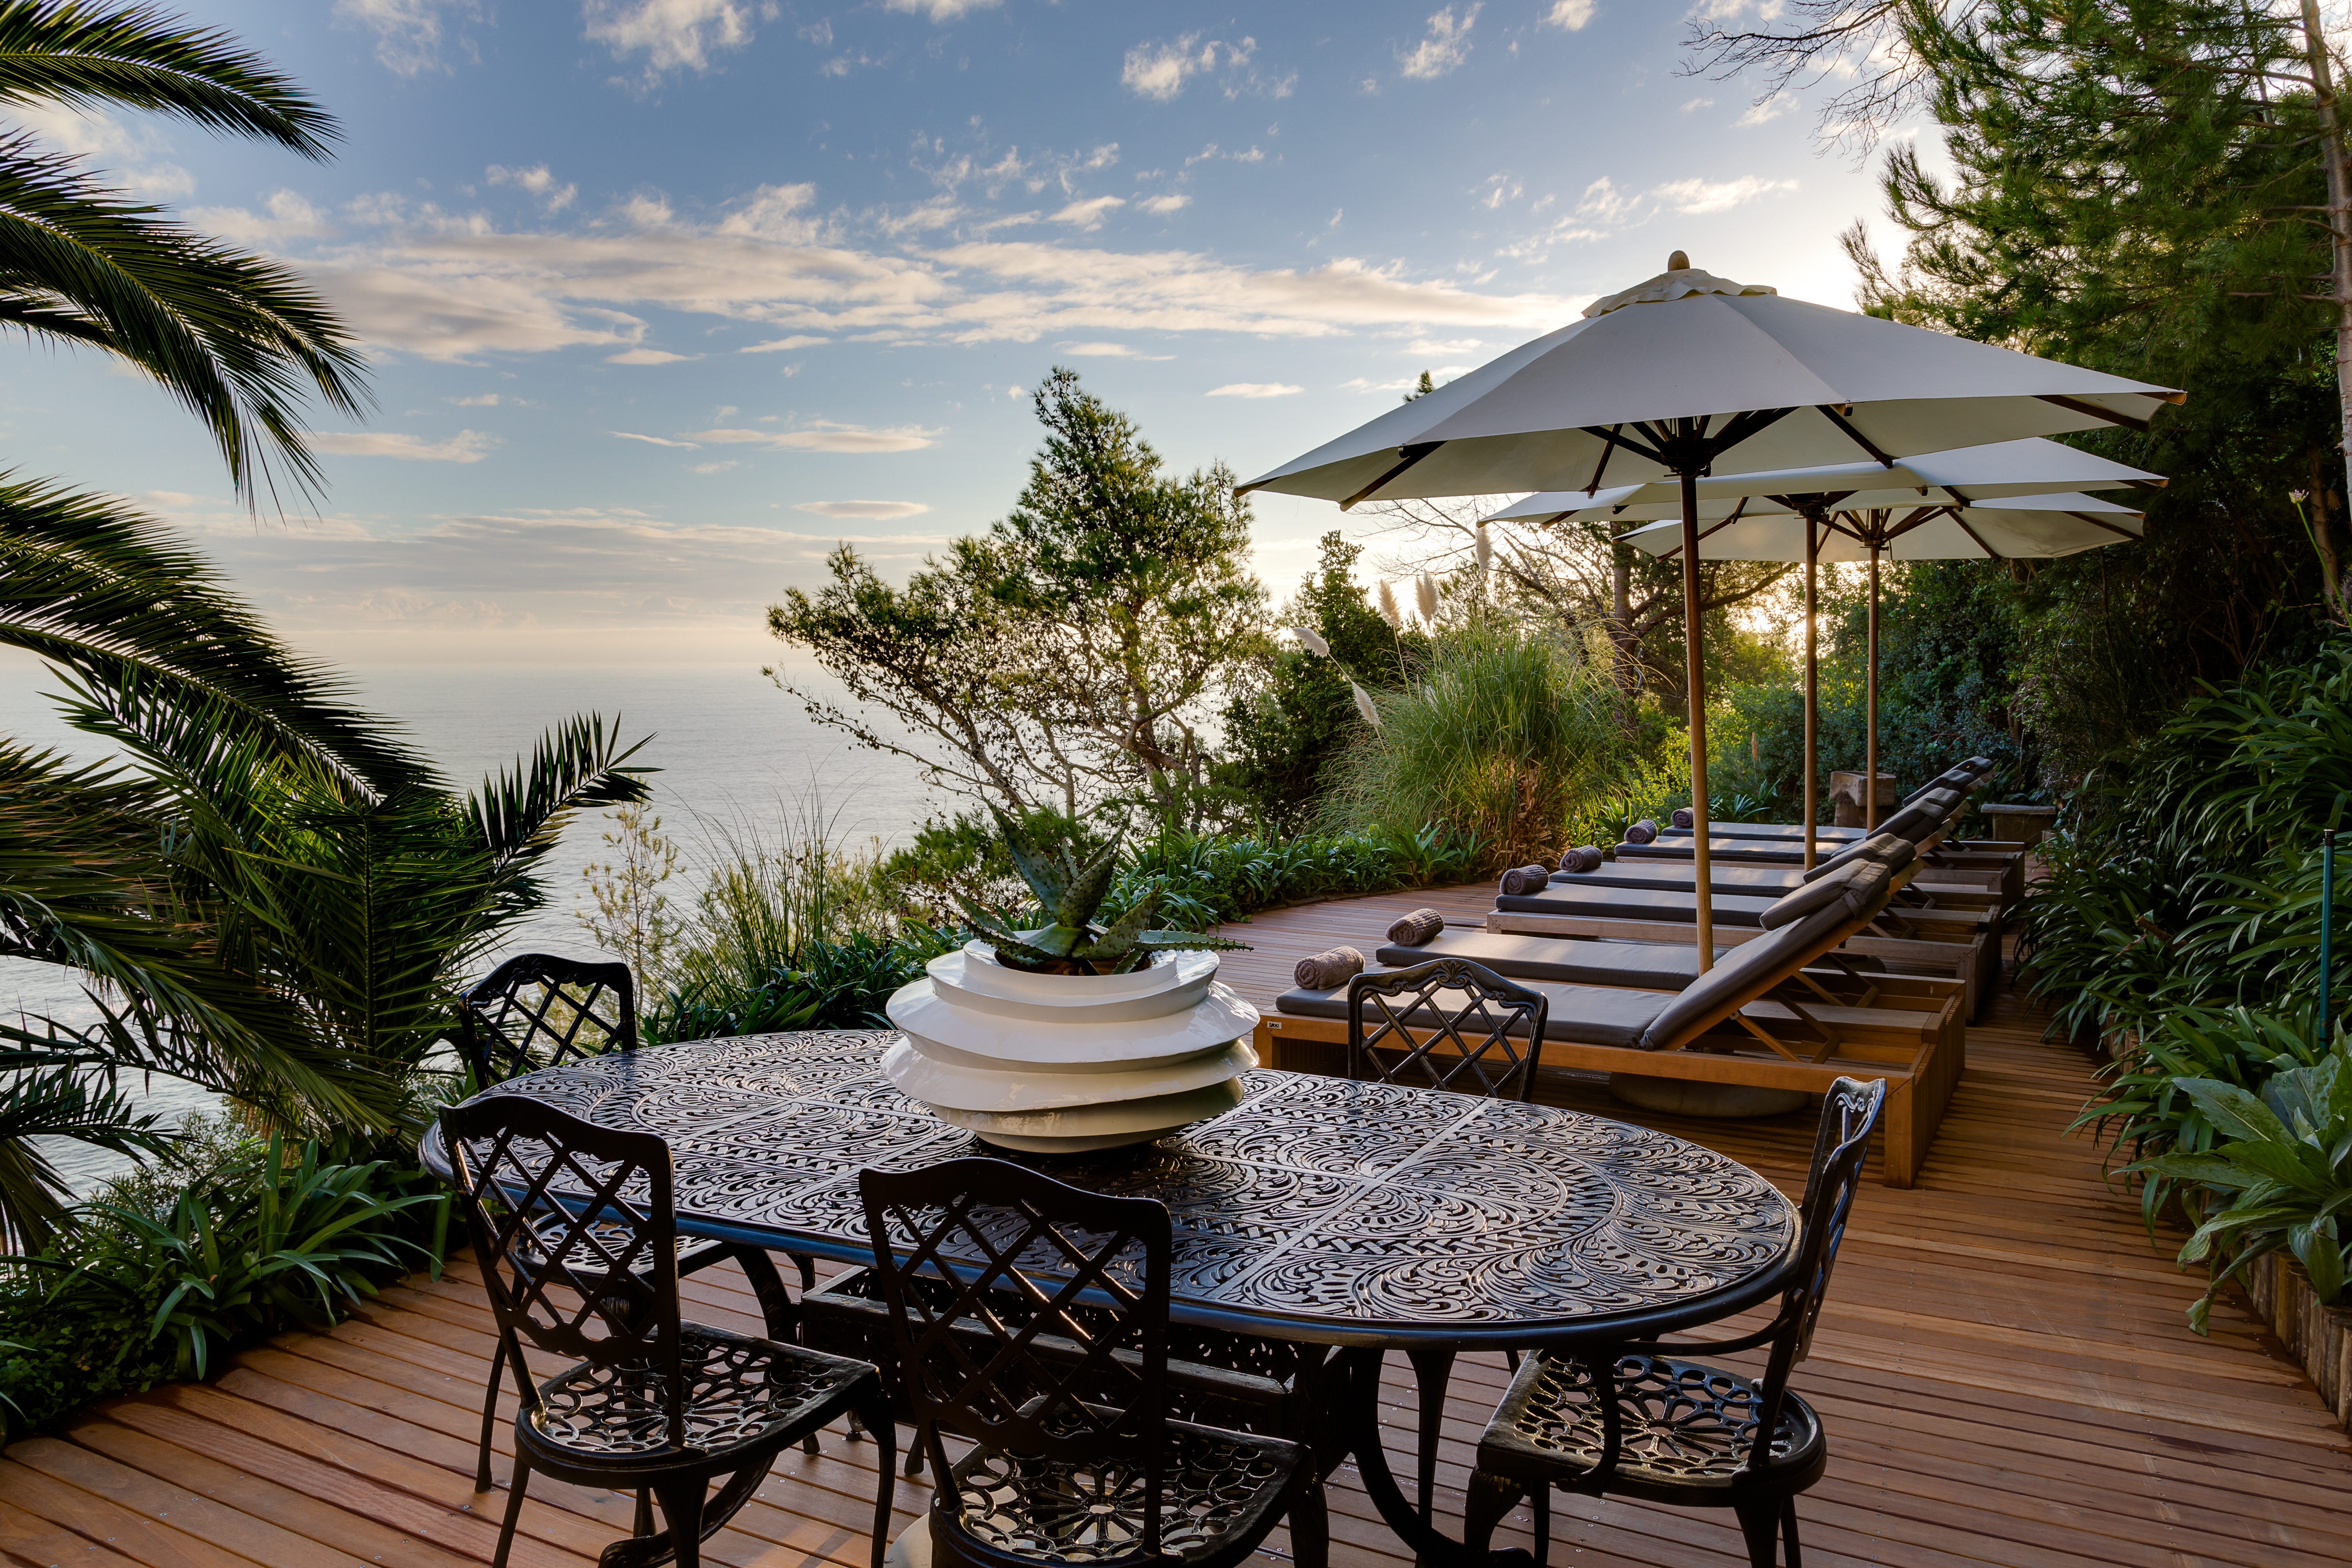 cape-view-clifton-garden-sun-deck